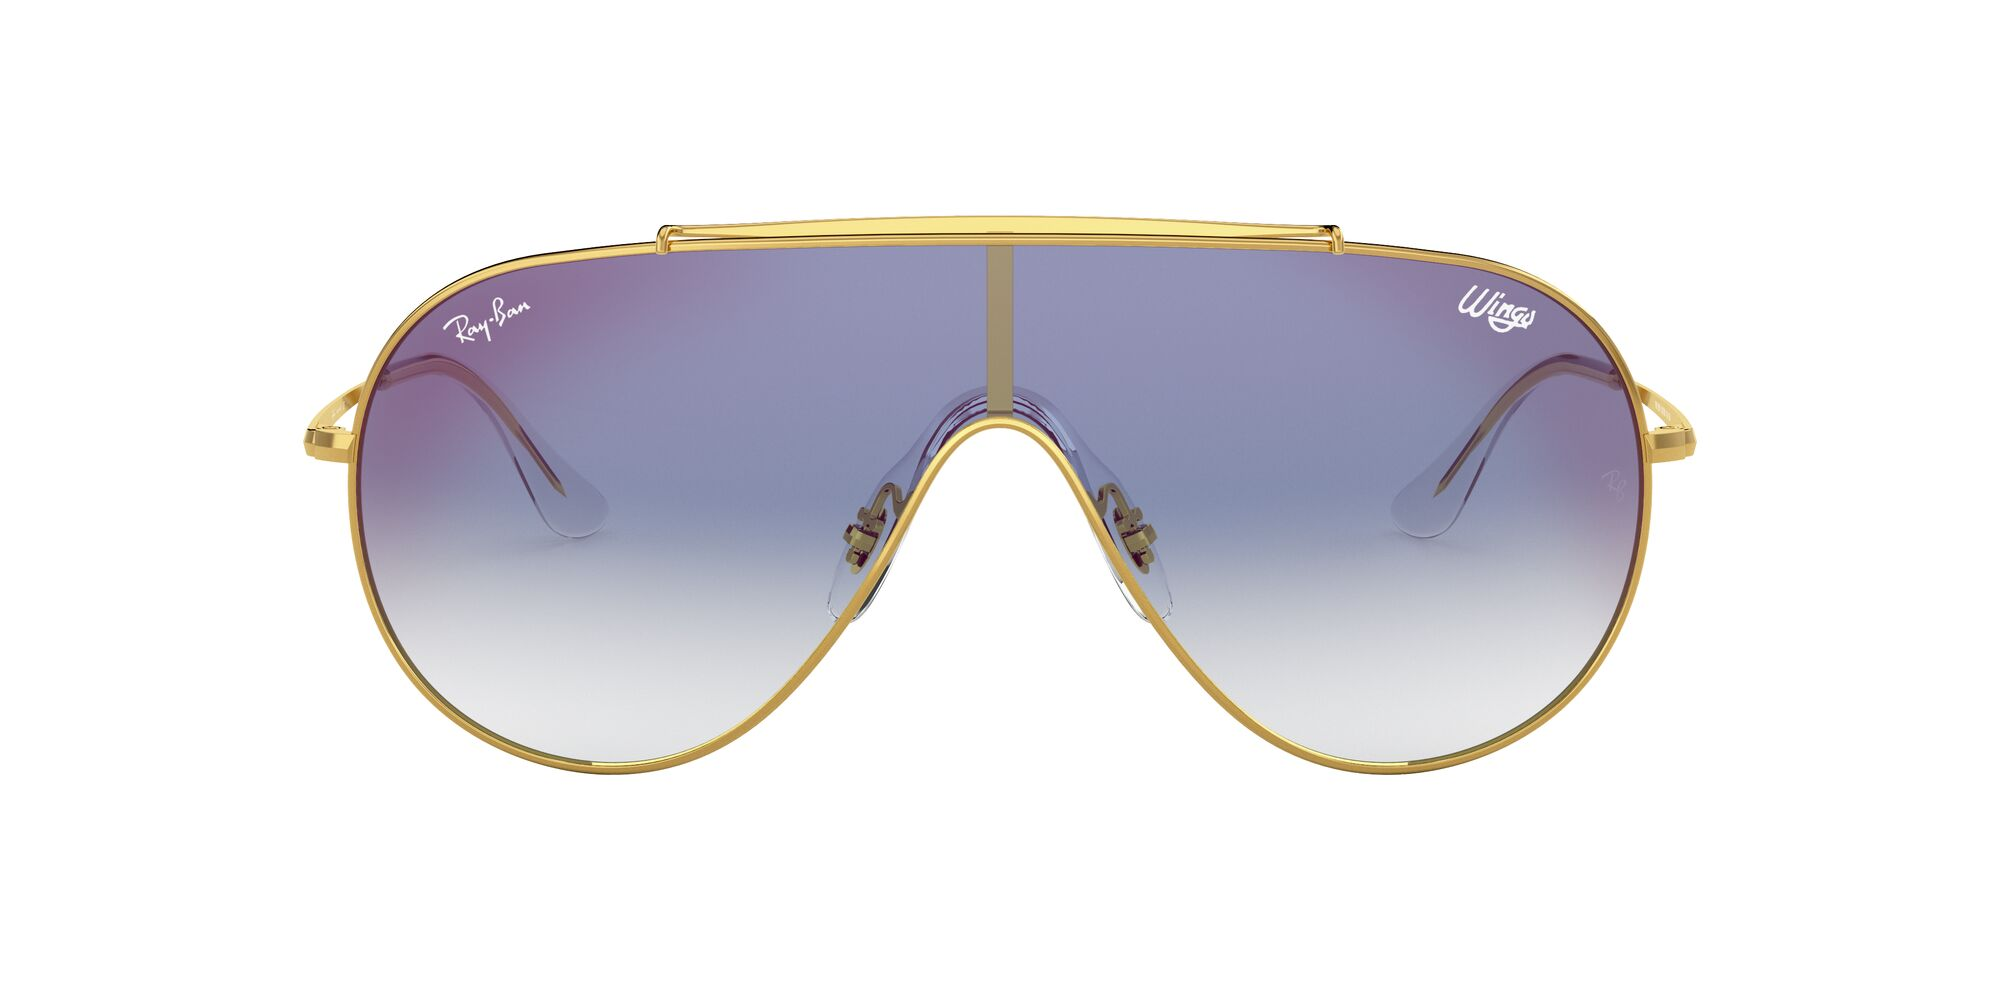 Front Ray-Ban Ray-Ban 0RB3597 001/X0 33/0 Goud/Blauw